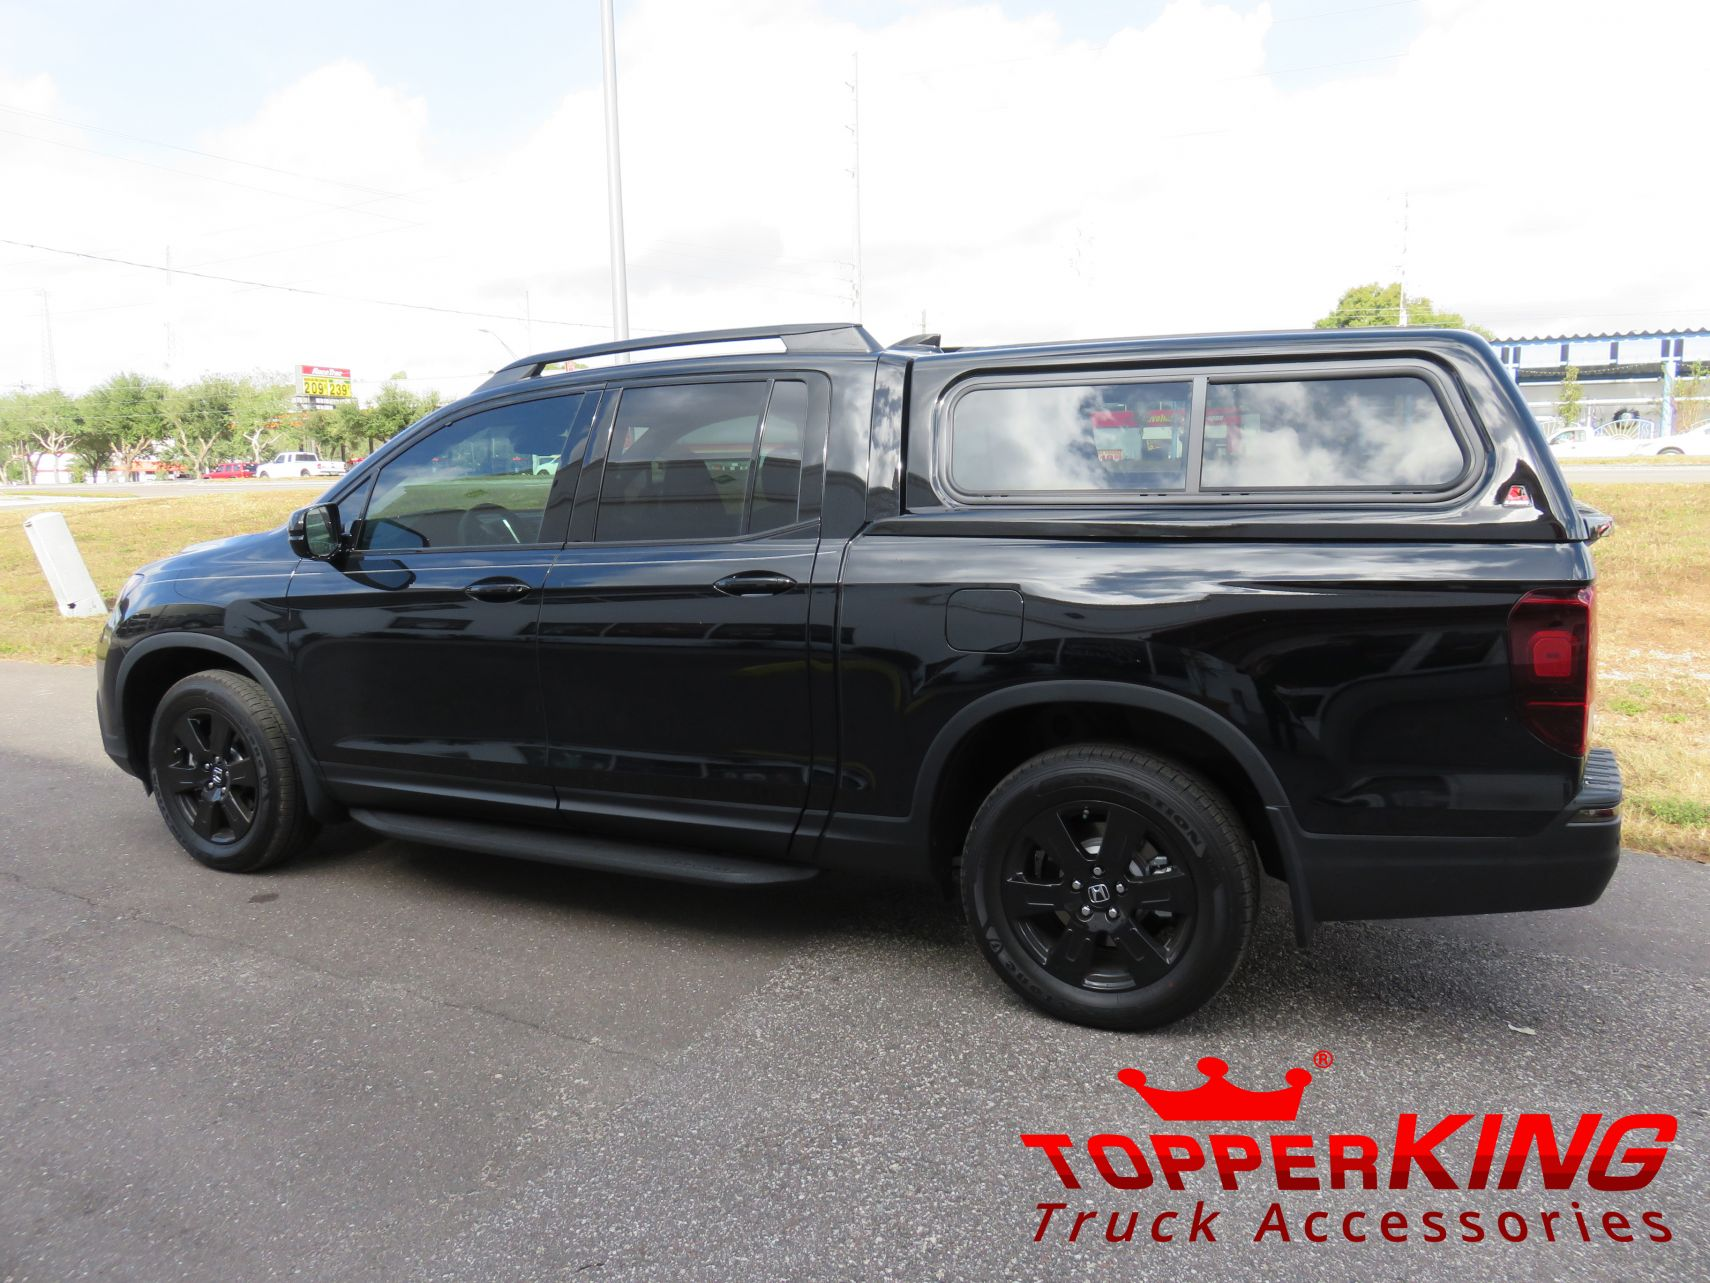 2017 Honda Ridgeline LEER 100XR - TopperKING : TopperKING | Providing all of Tampa Bay with ...